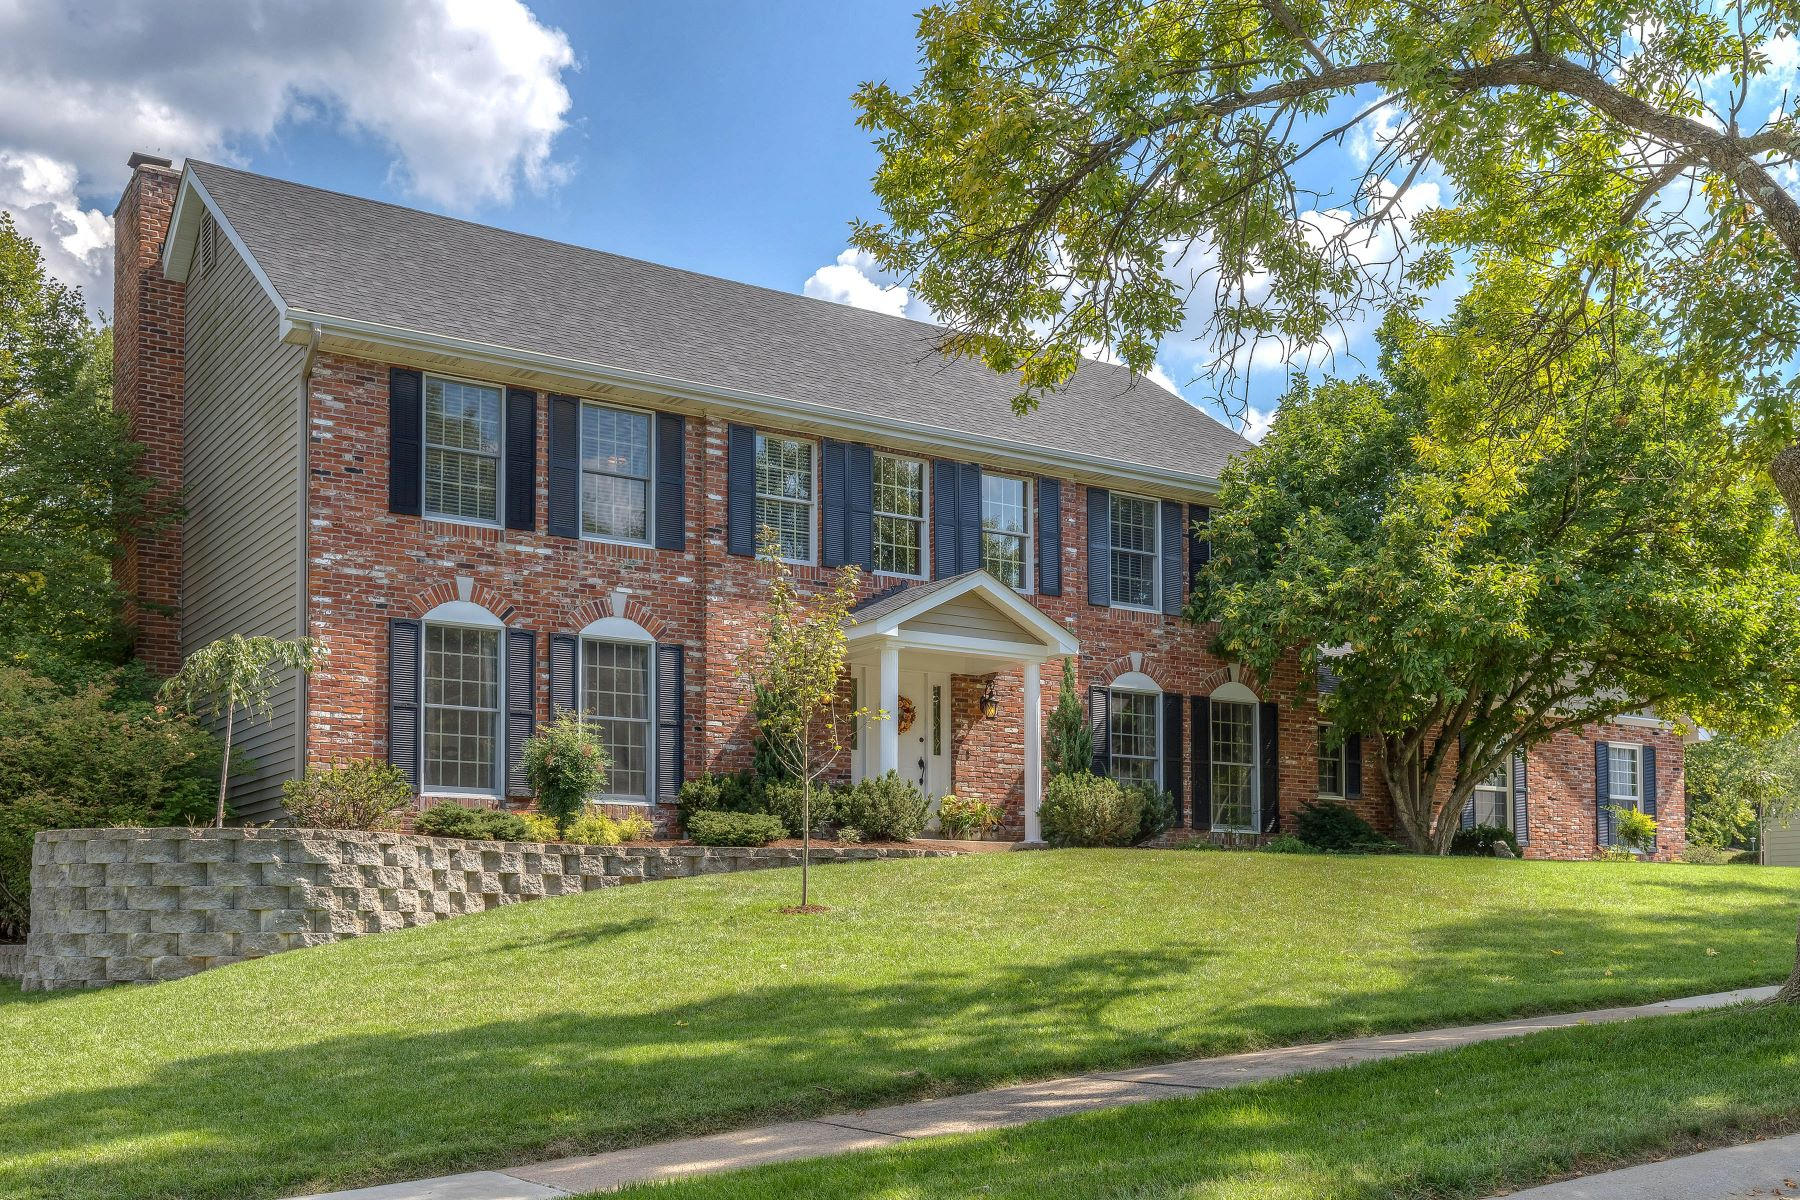 Single Family Home for Sale at Sun Meadow Dr 2626 Sun Meadow Dr Wildwood, Missouri 63005 United States